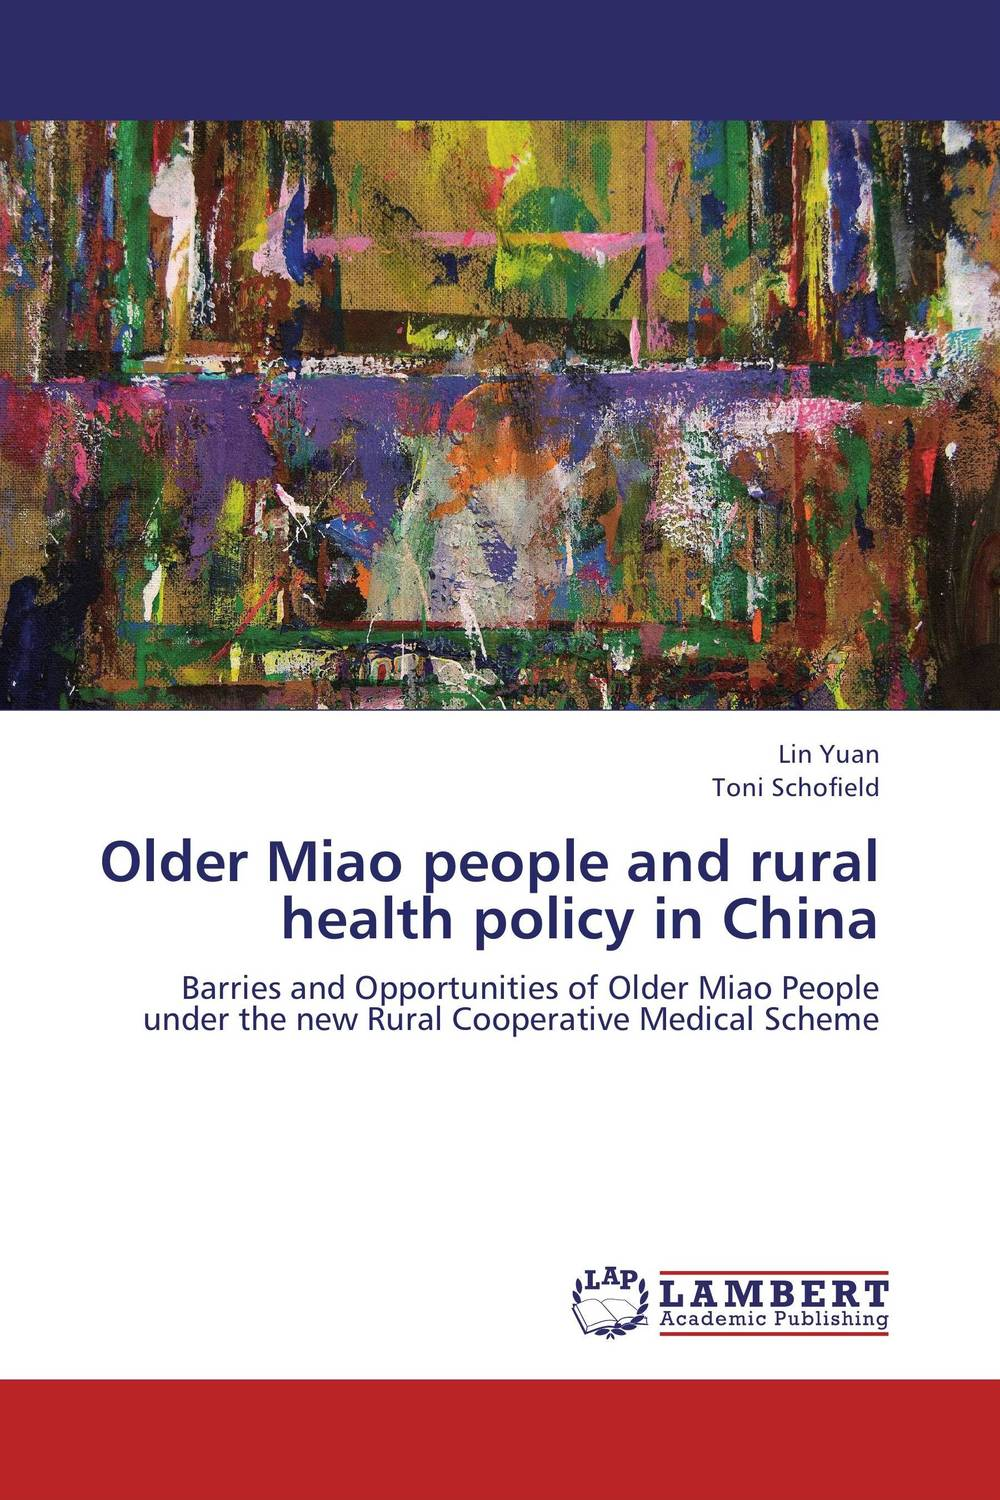 Older Miao people and rural health policy in China